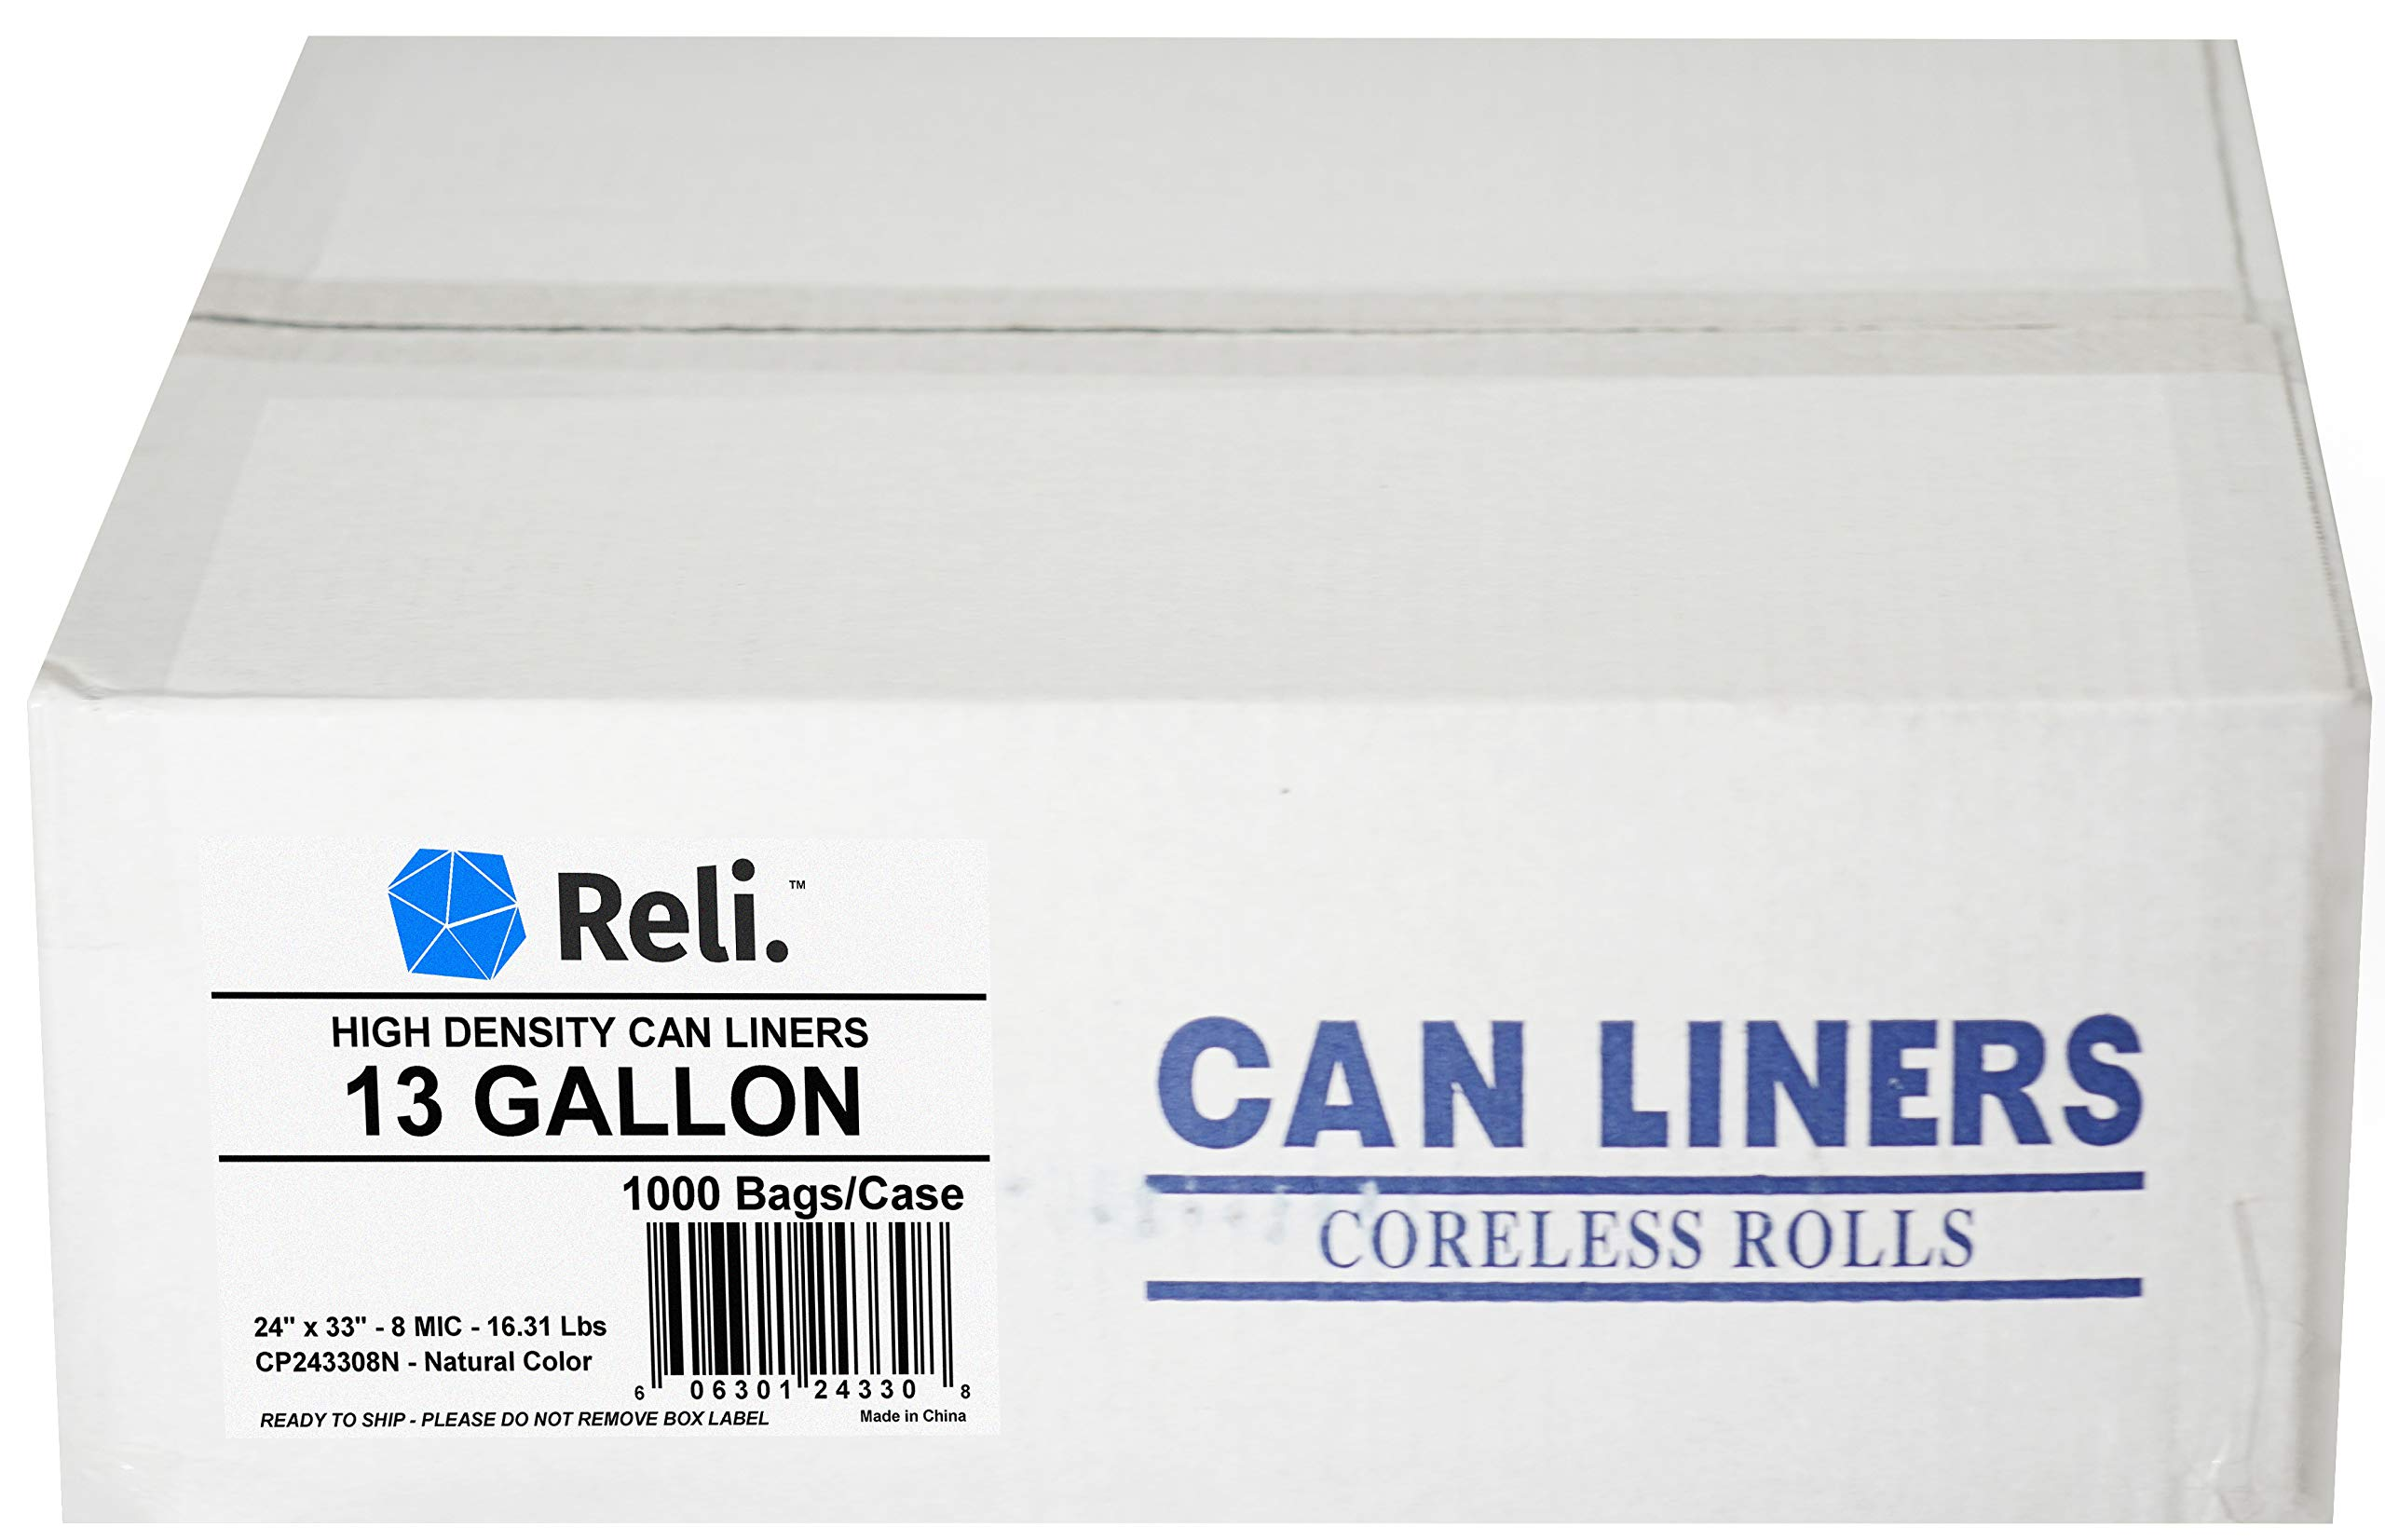 Reli. 13 Gallon Trash Bags (1000 Count Bulk) Clear Trash Bags 13 Gallon in Bulk - Recycling Clear Can Liners 13 Gallon - 16 Gallon Tall Kitchen (13 Gal) by Reli.